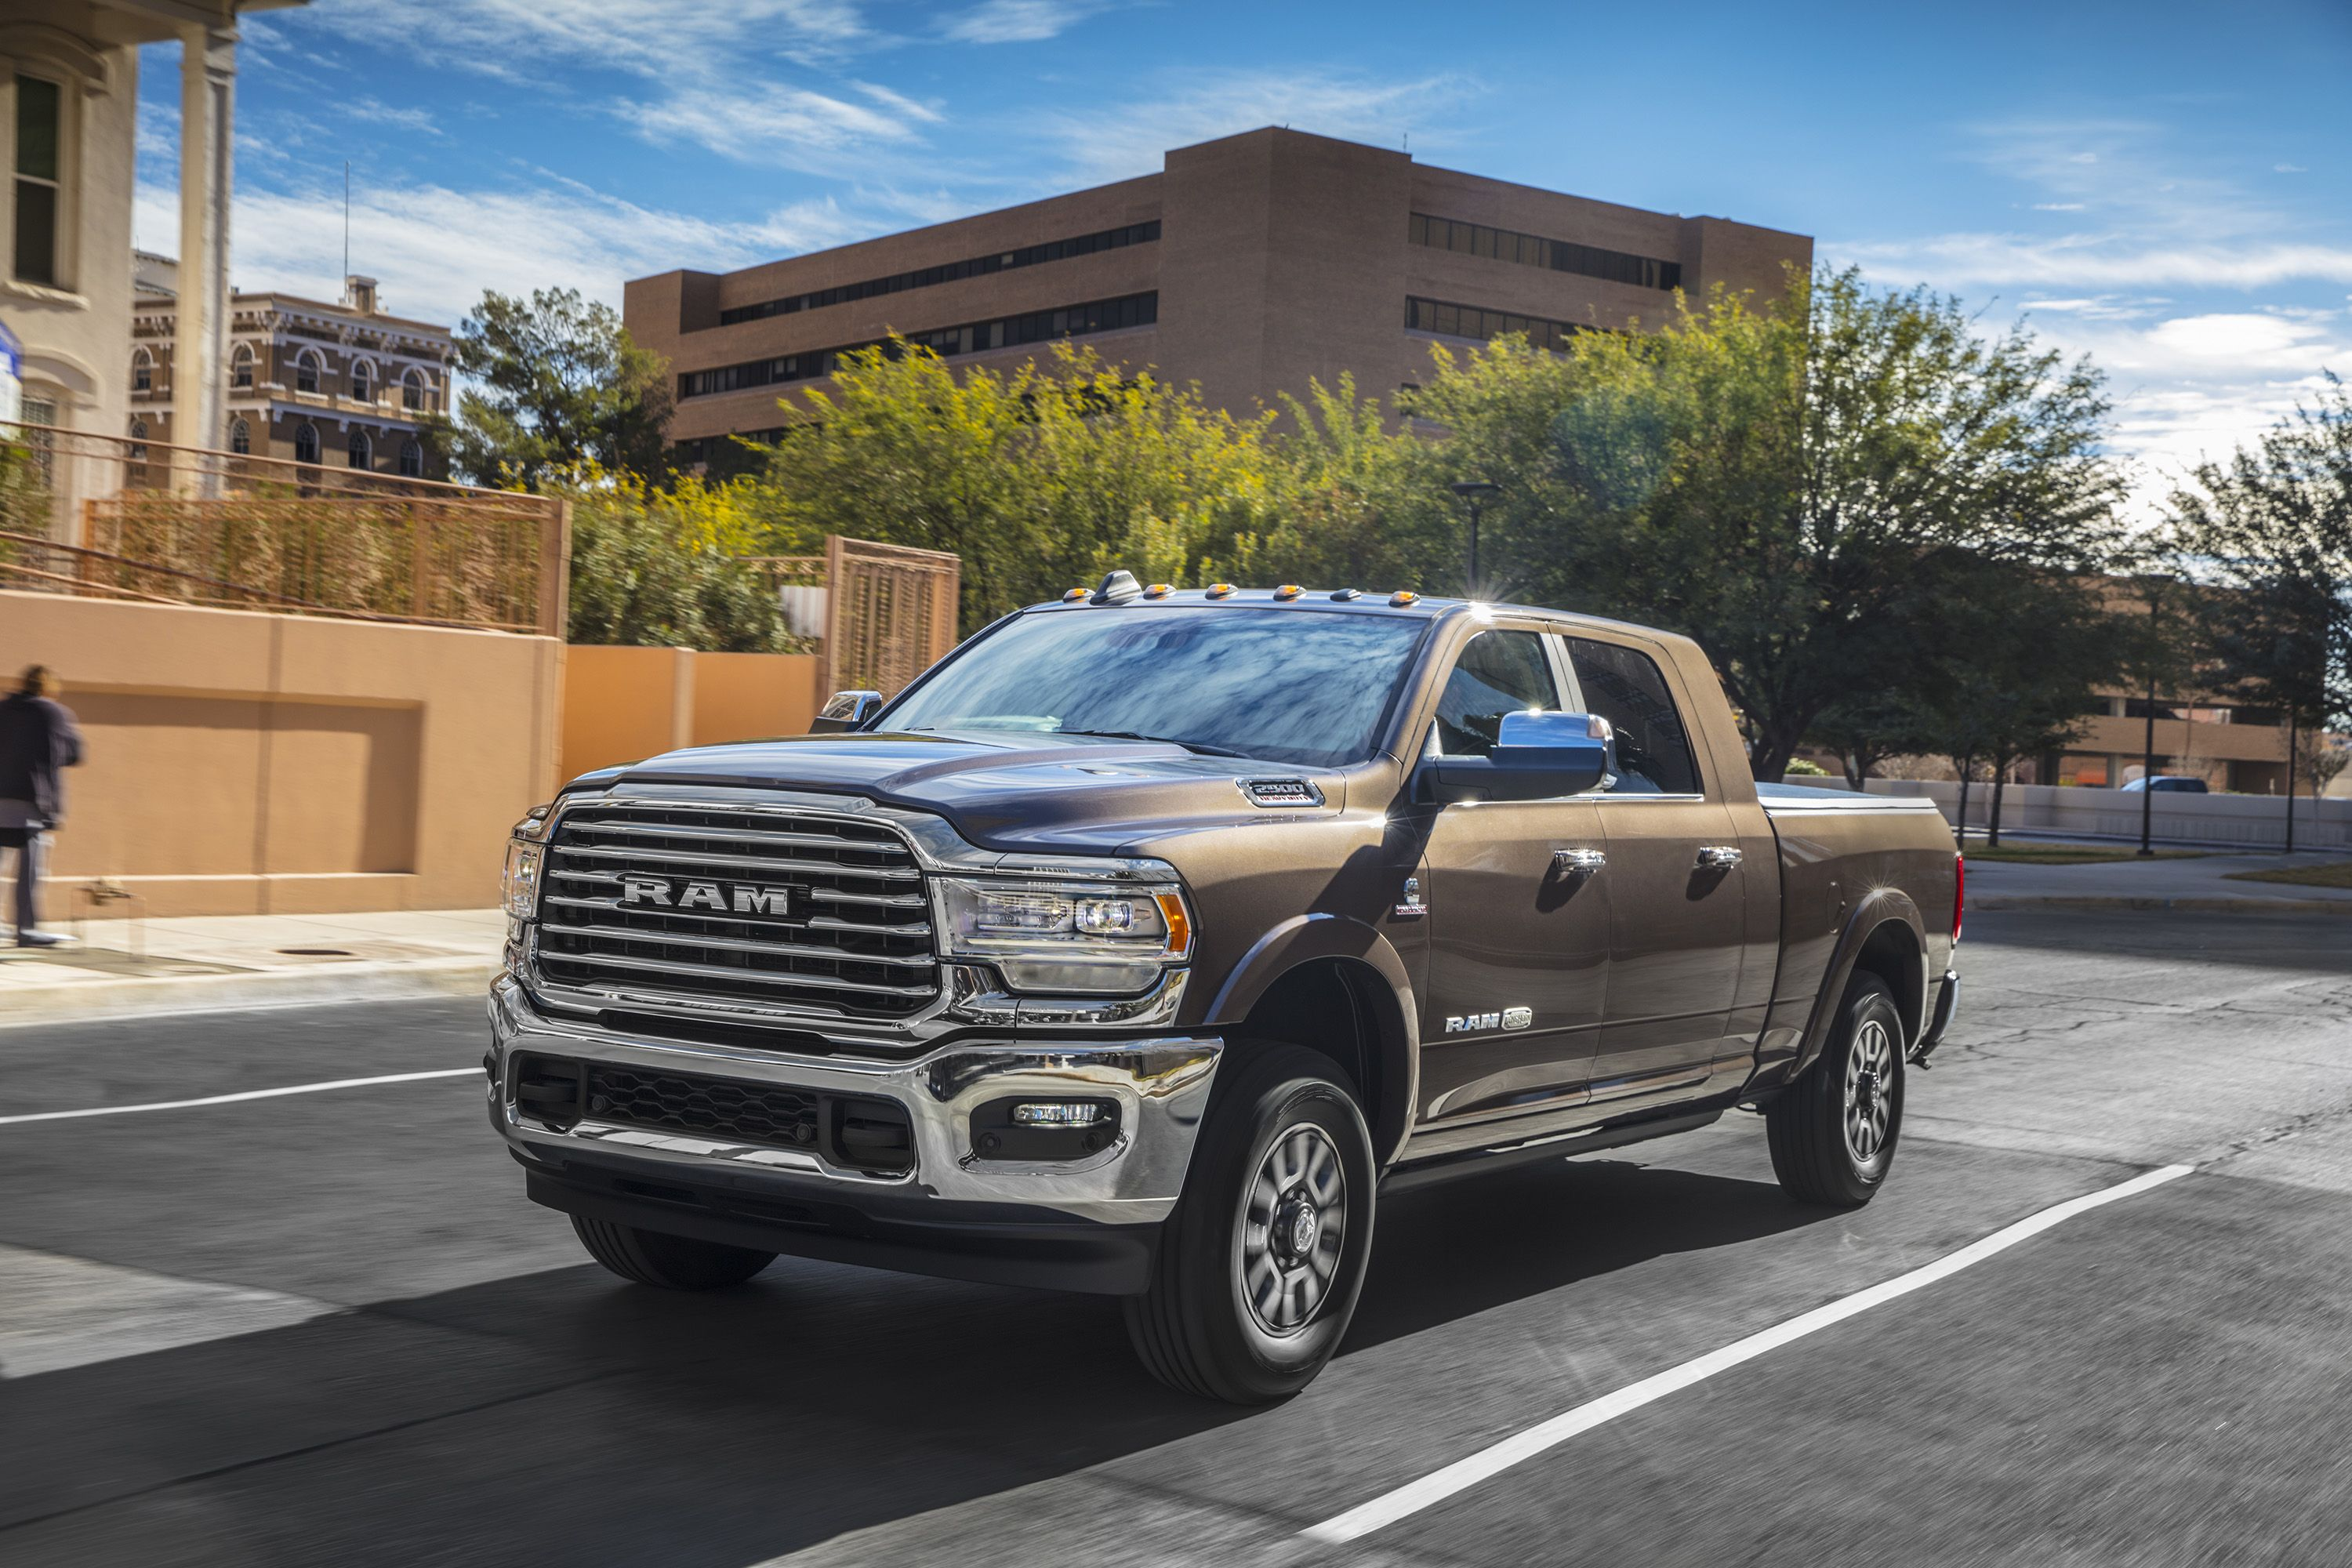 2019 Ram Hd >> 2019 Ram Hd Pickup Pricing 2500 3500 And Power Wagon Prices